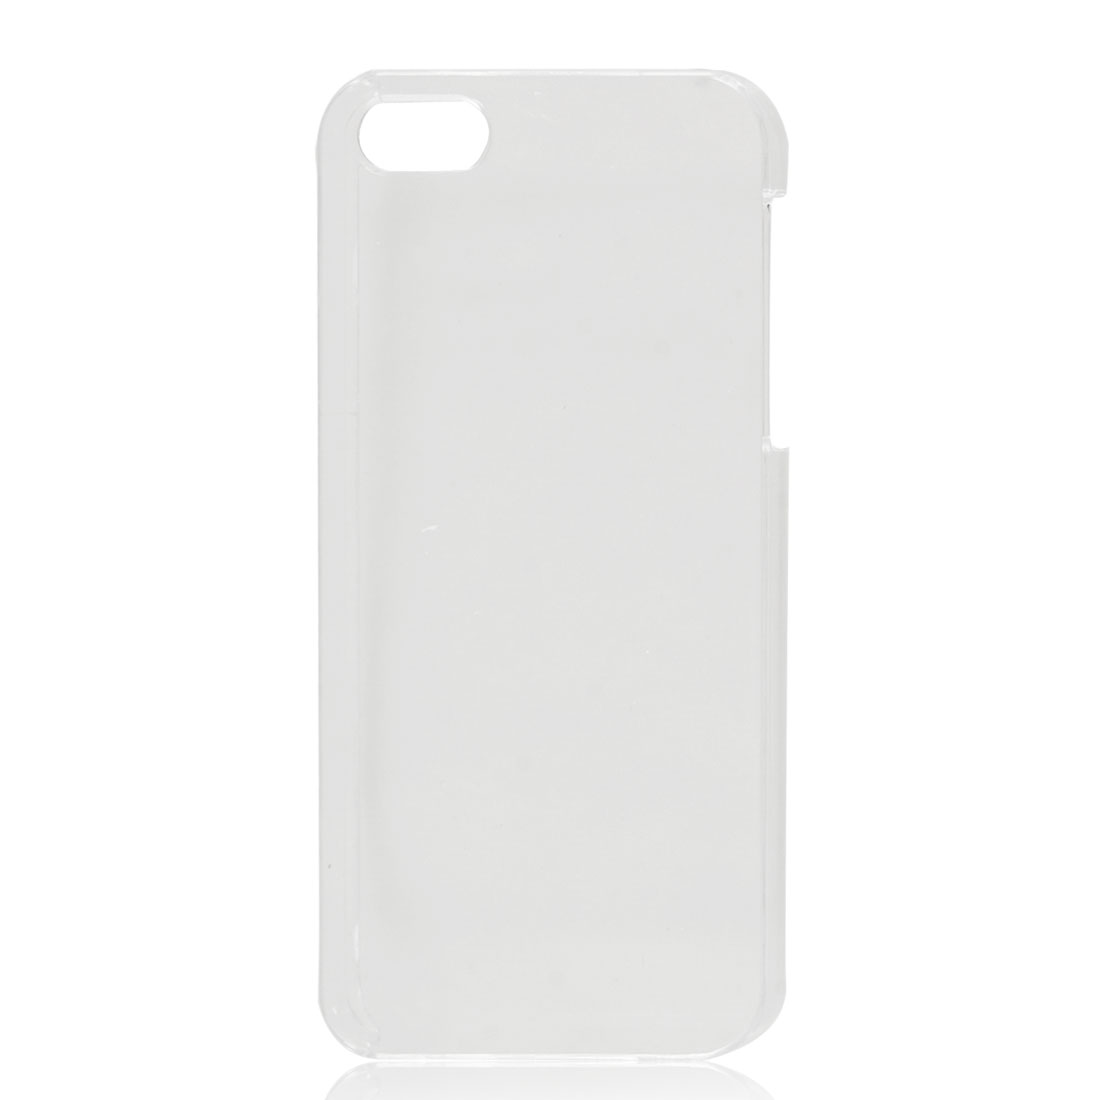 Crystal Clear Hard Back Case Protective Cover Skin for iPhone 5 5G